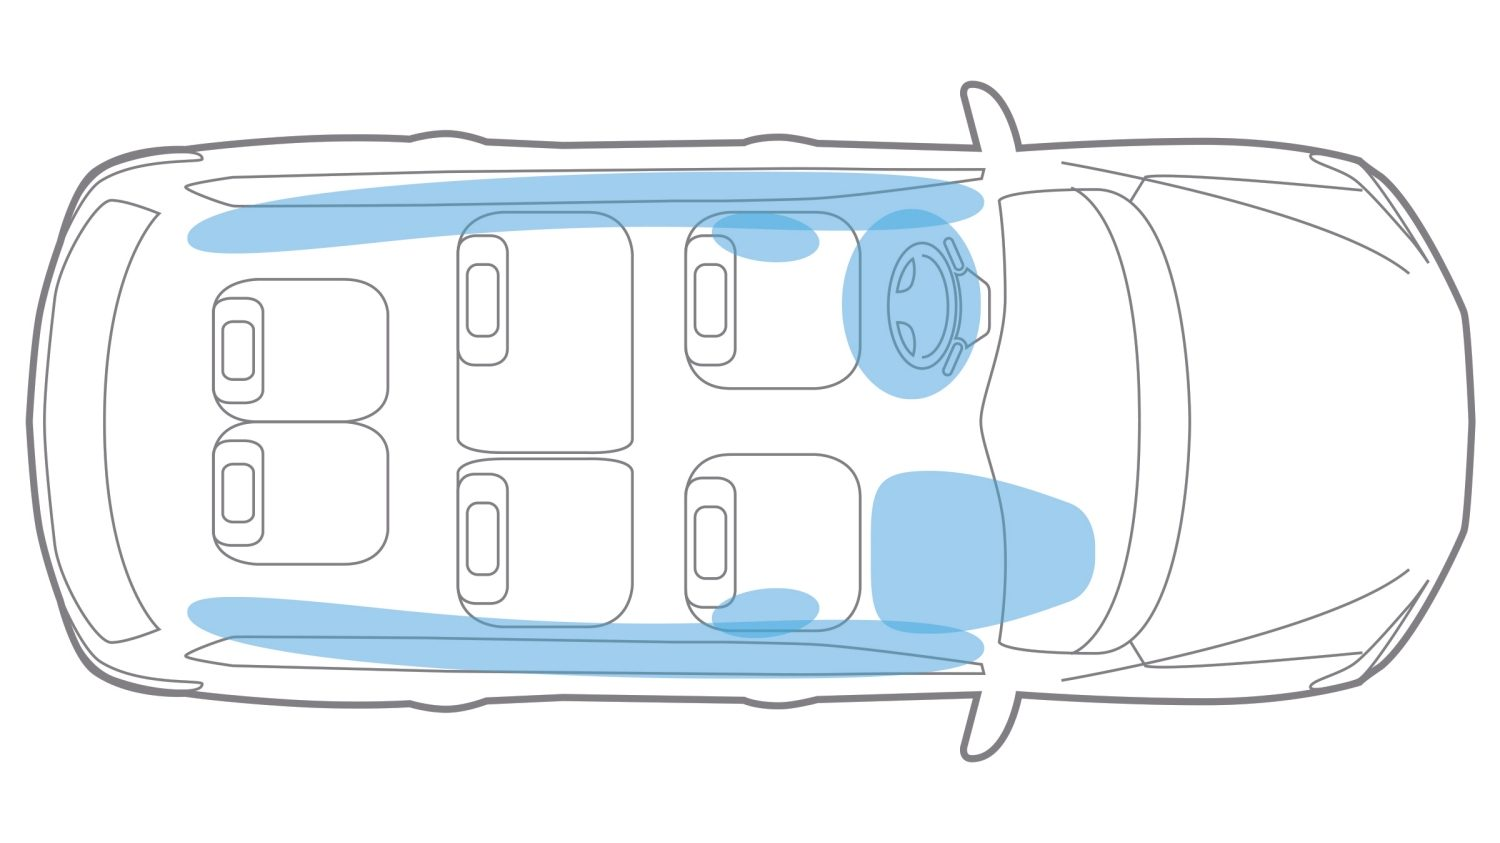 Nissan Pathfinder illustration of air bag placement